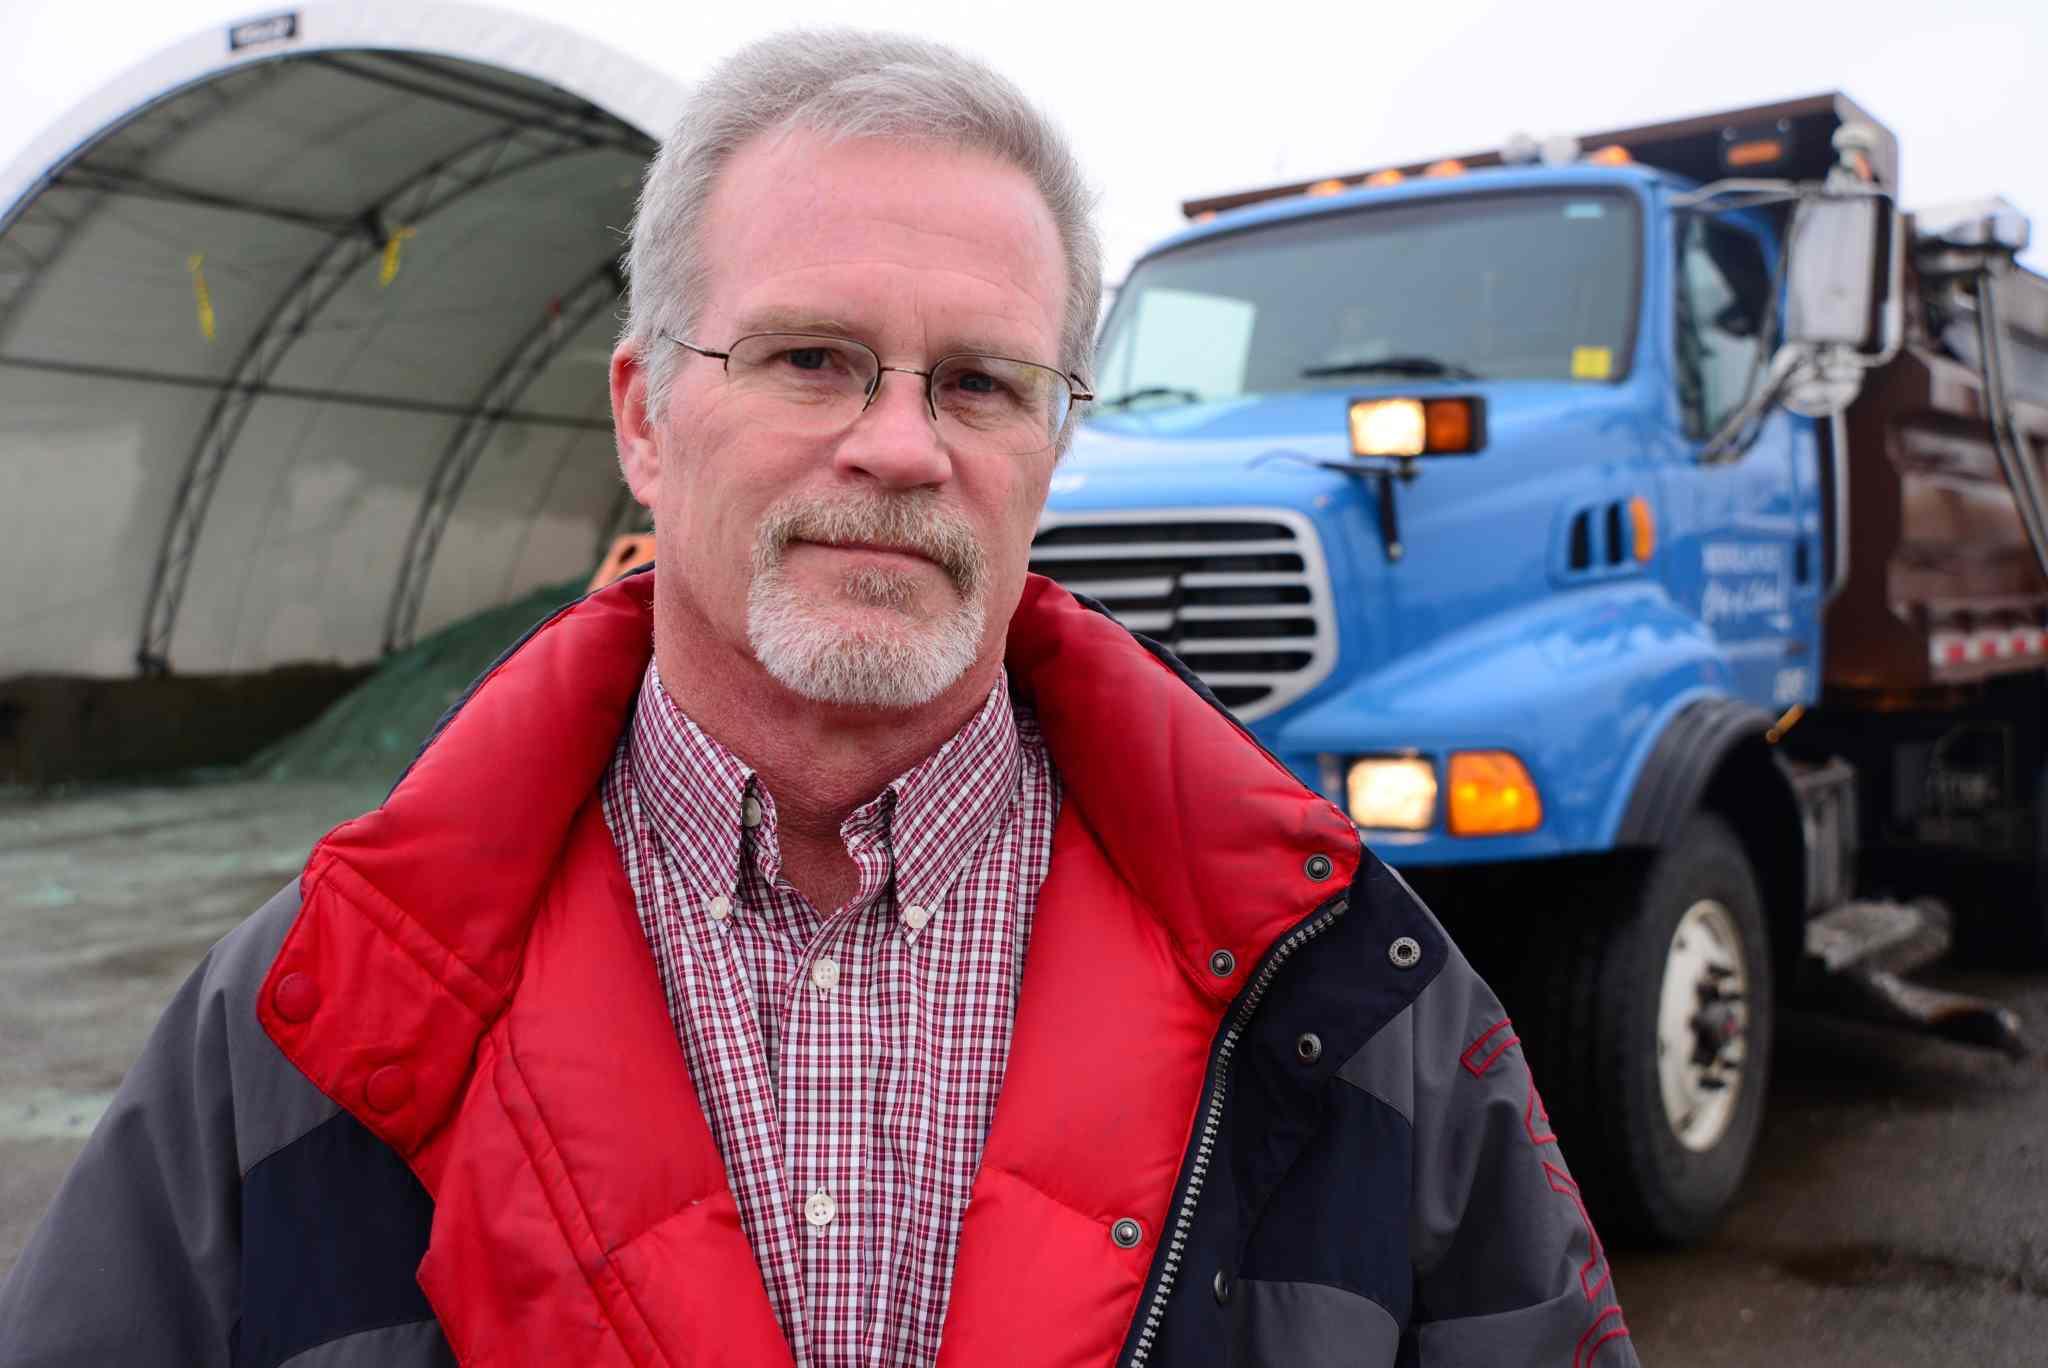 Mike Kennedy is Director of Transportation, Maintenance and Repair for the City of Minneapolis.